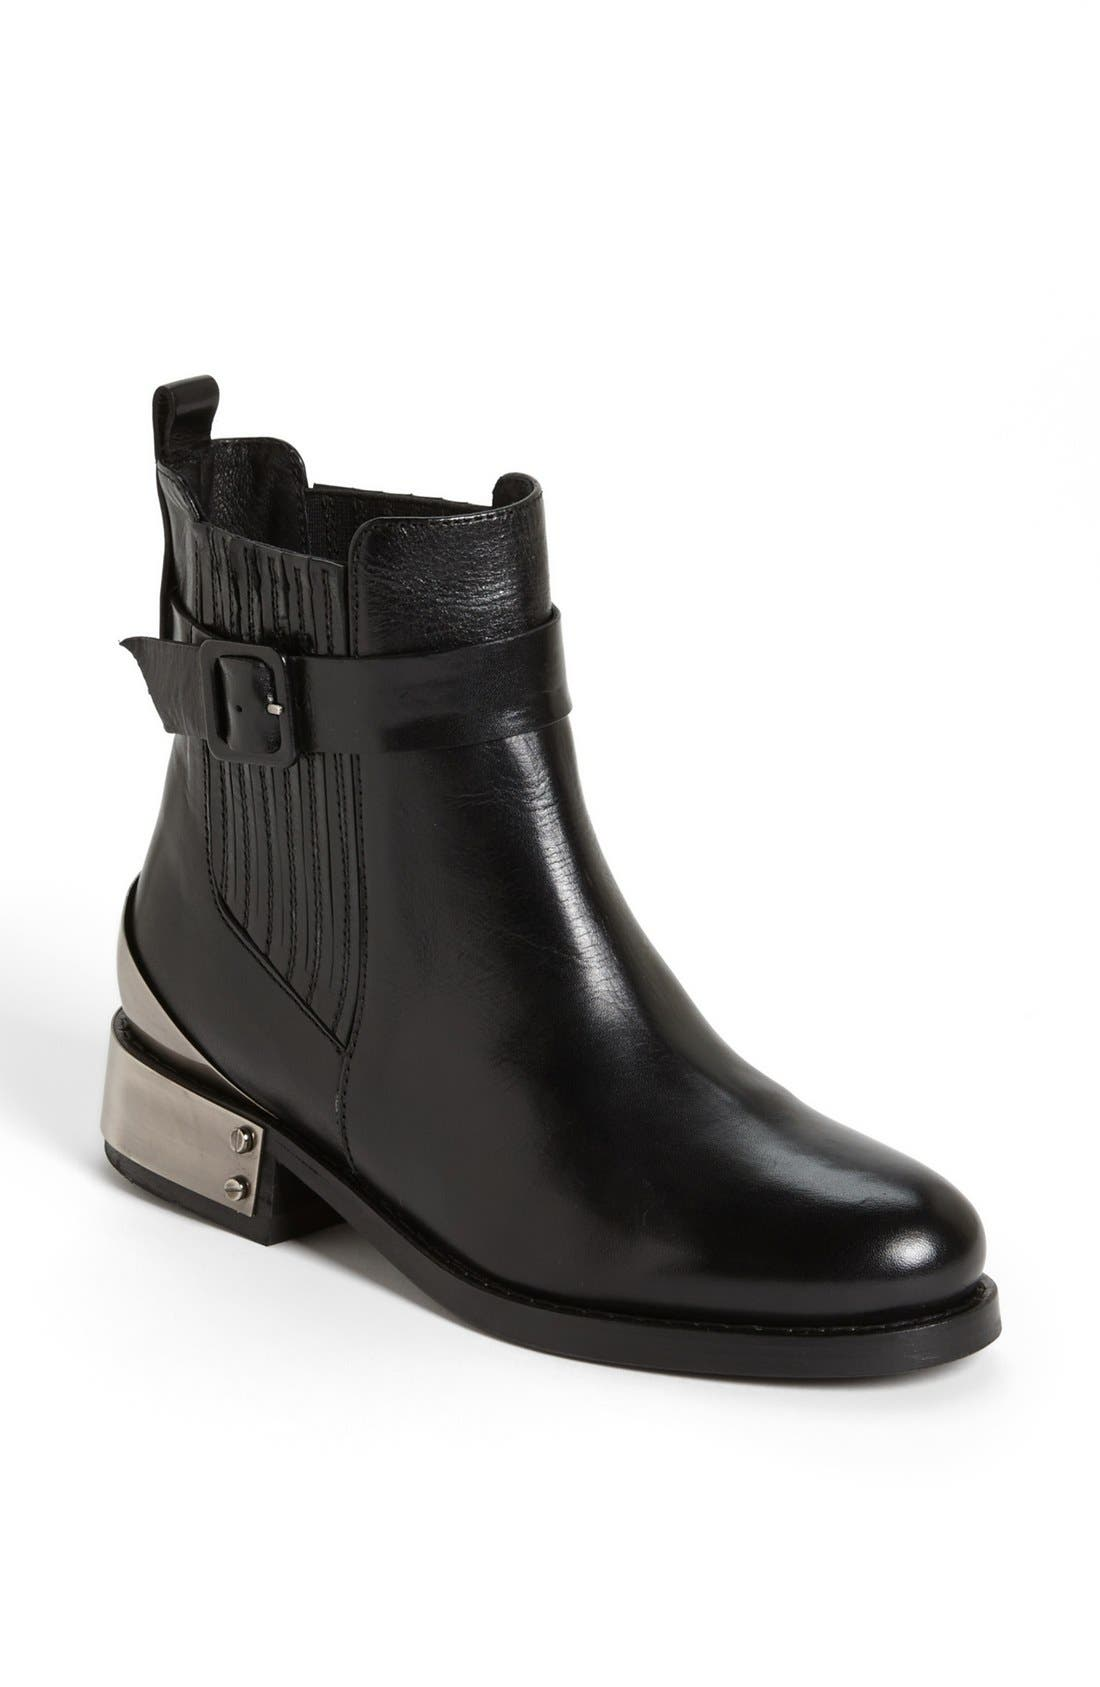 Alternate Image 1 Selected - Topshop 'Pago' Boot